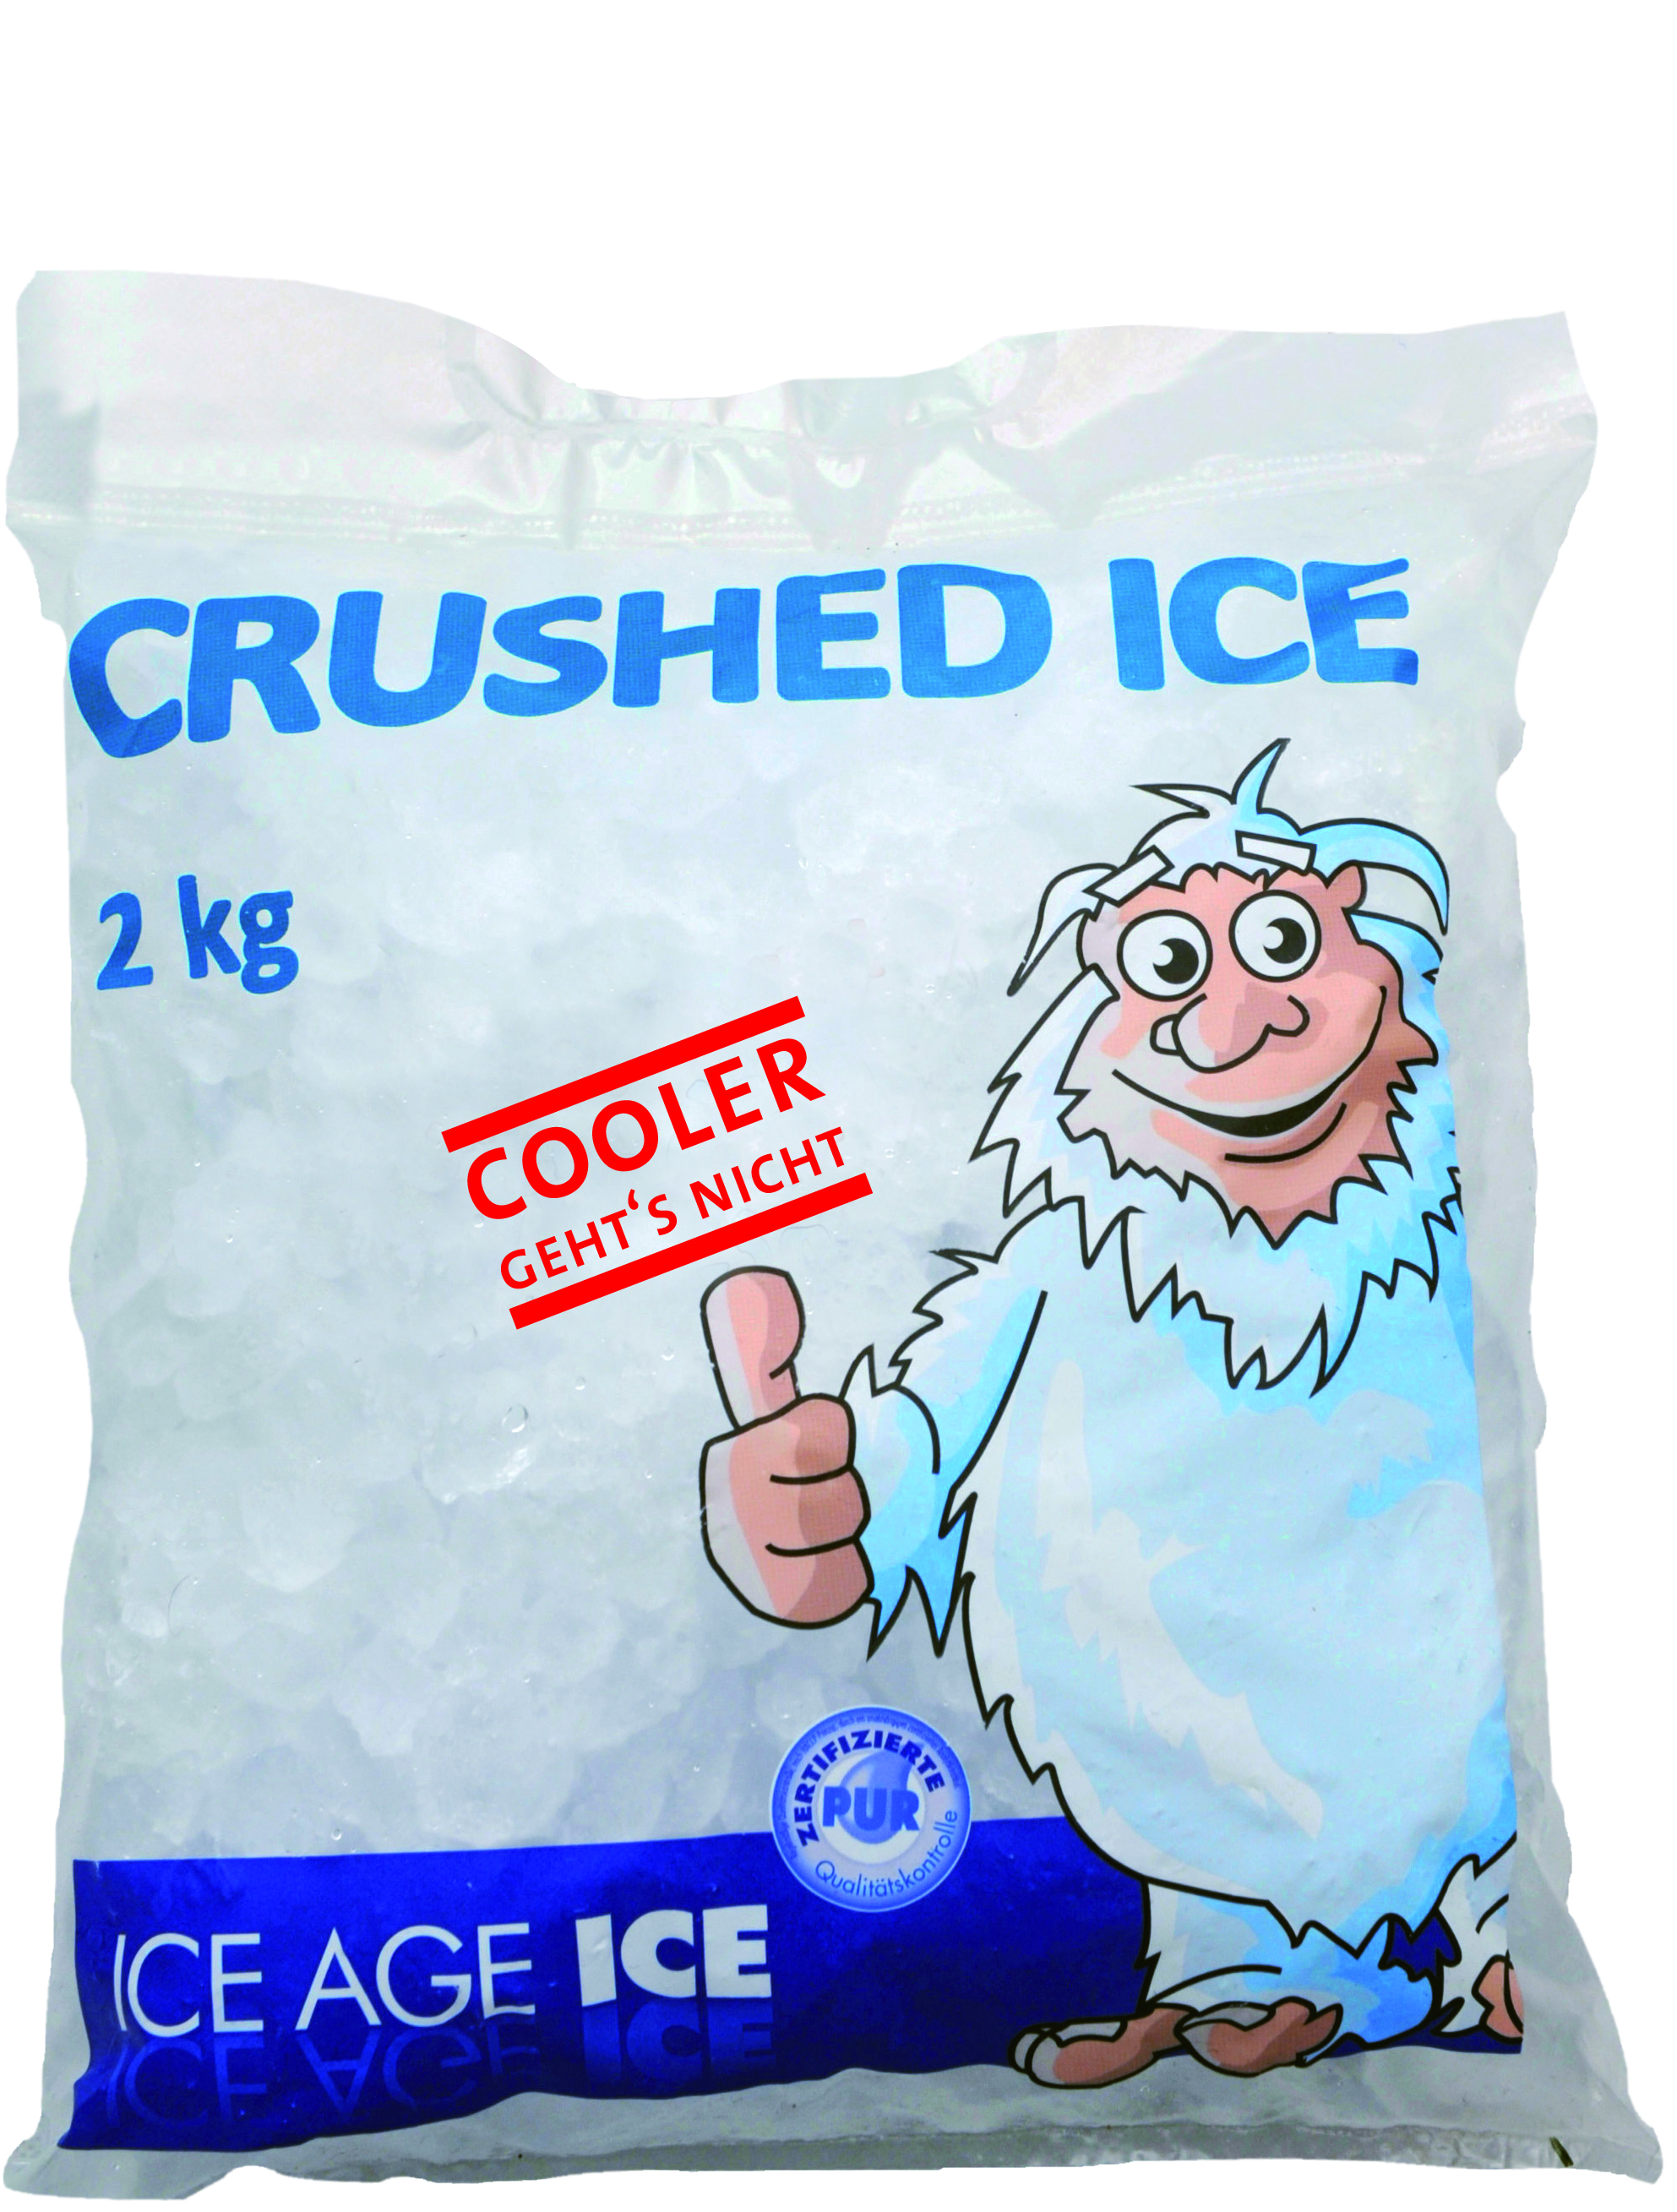 ICE AGE ICE Crushed Eis 2000 g